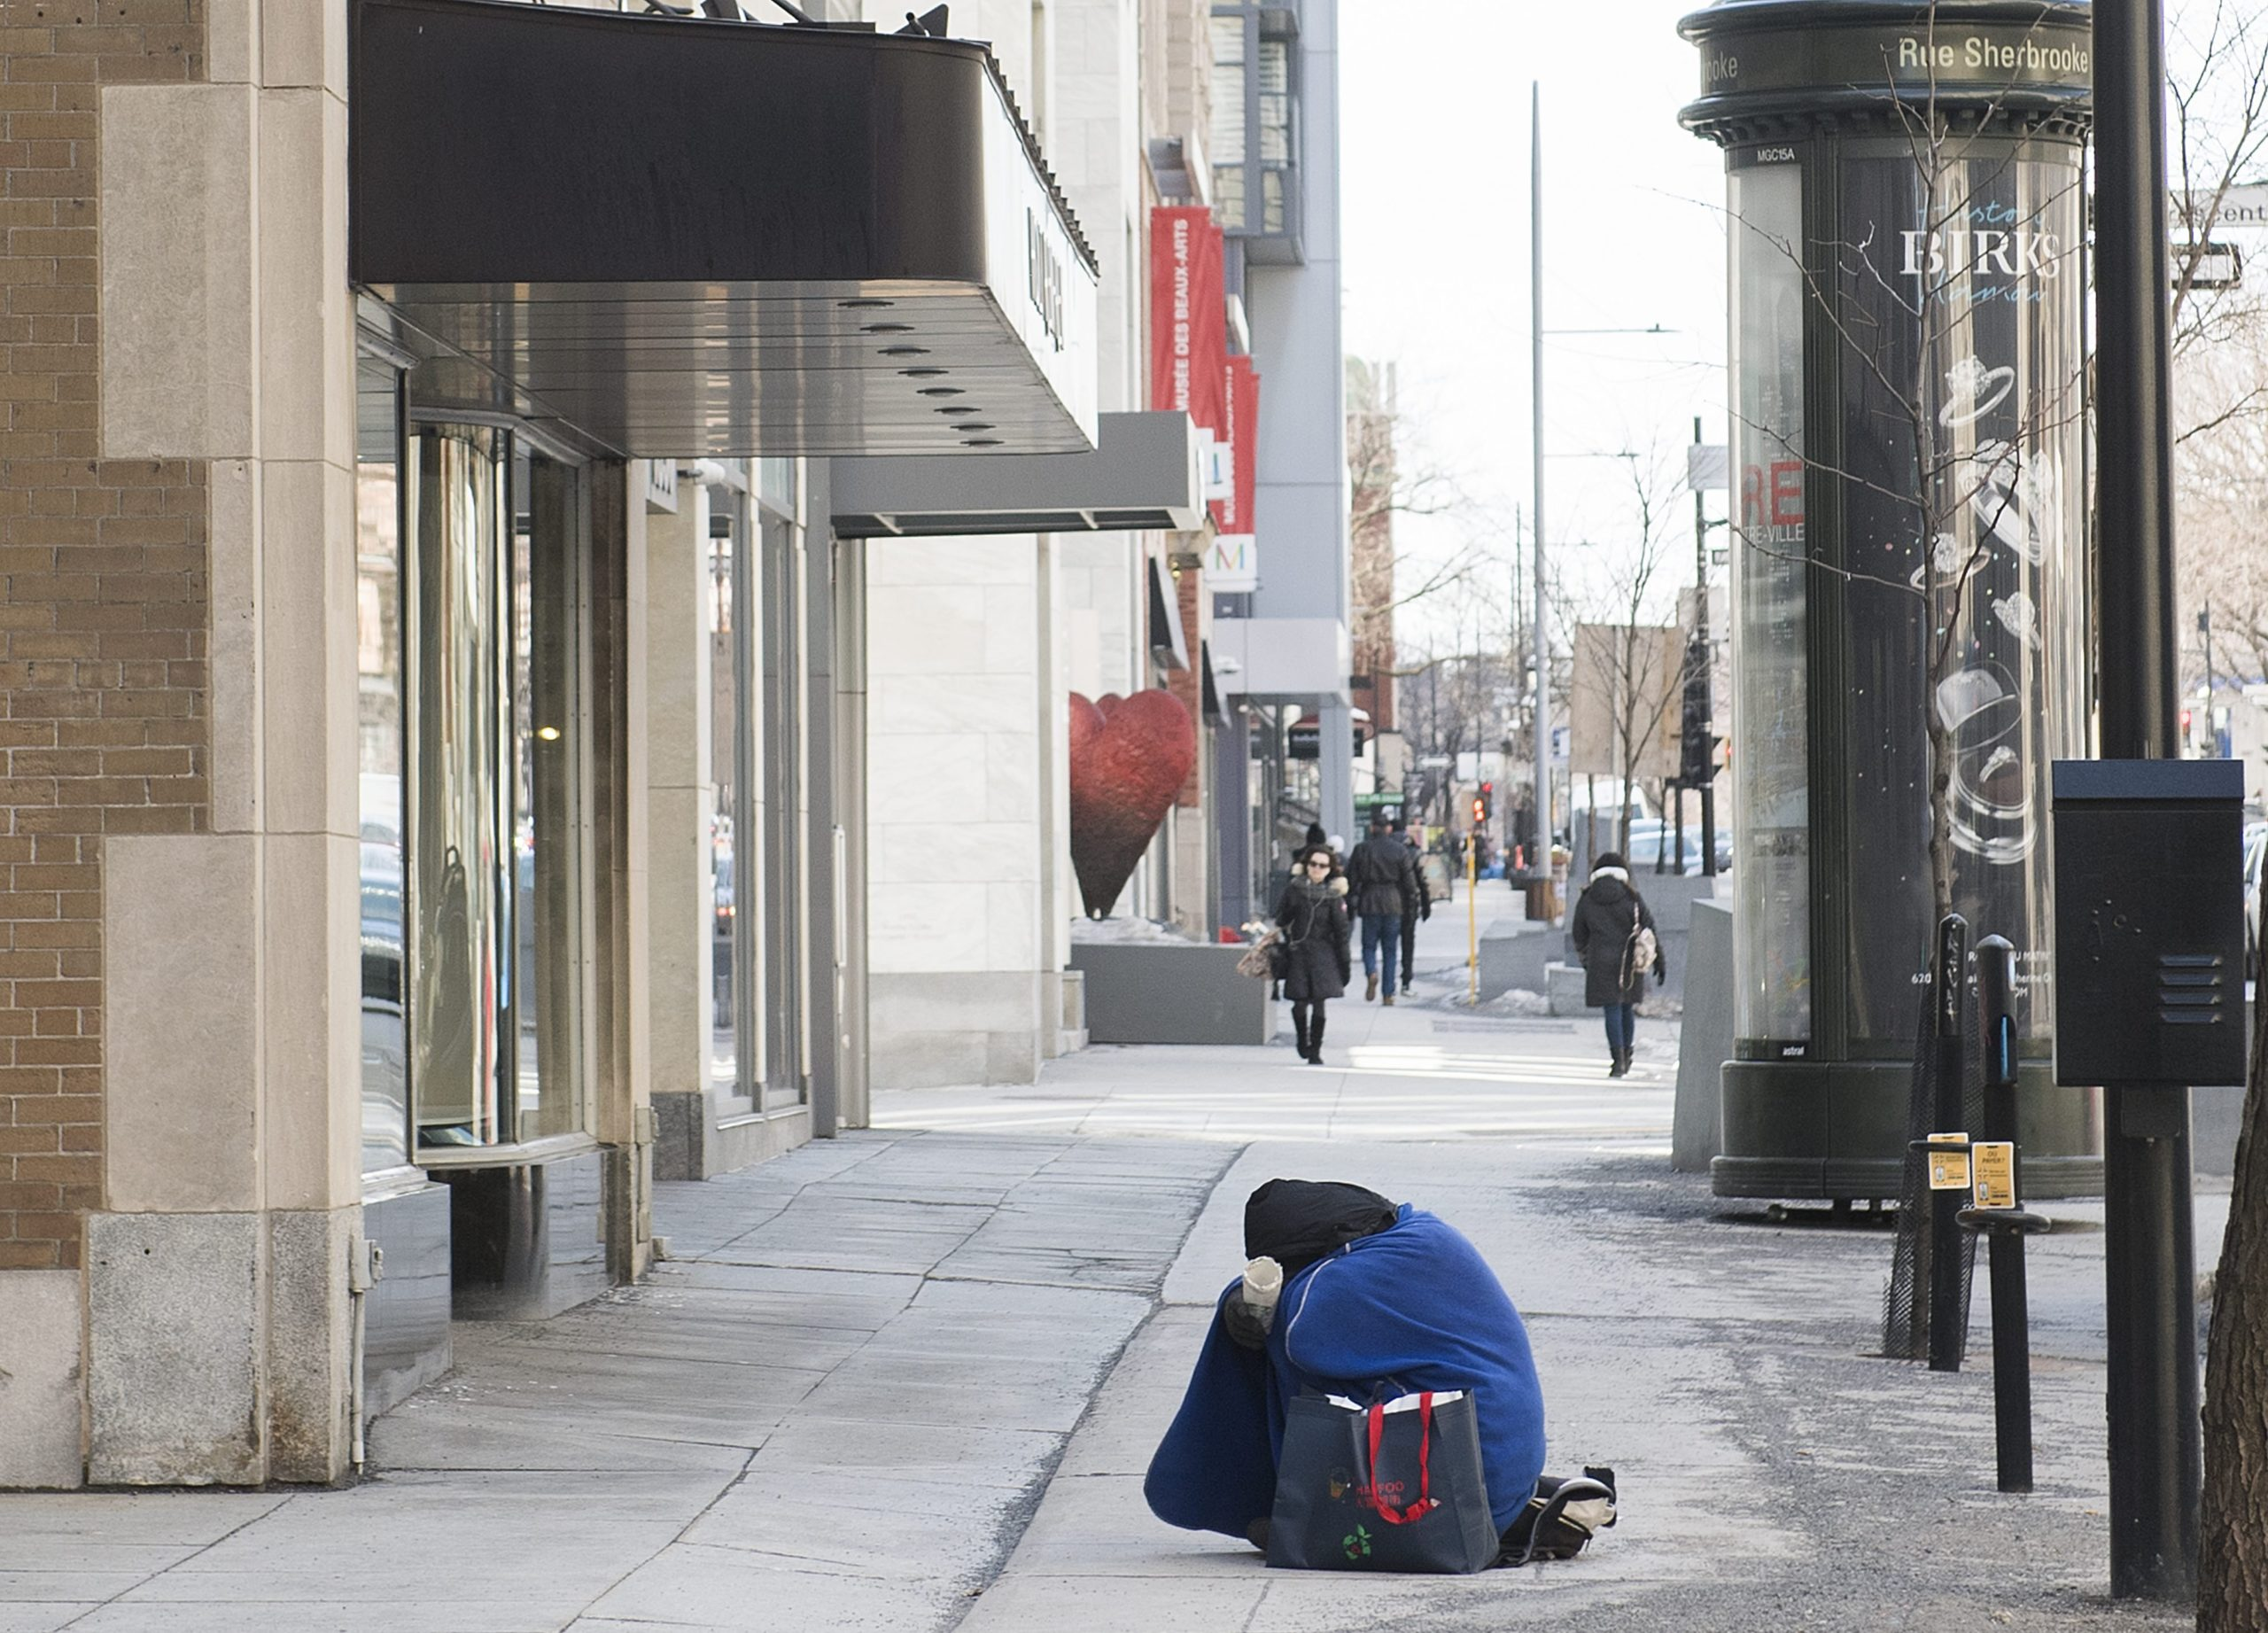 Montreal shelters' concerns heightened after homeless man tests positive for COVID-19